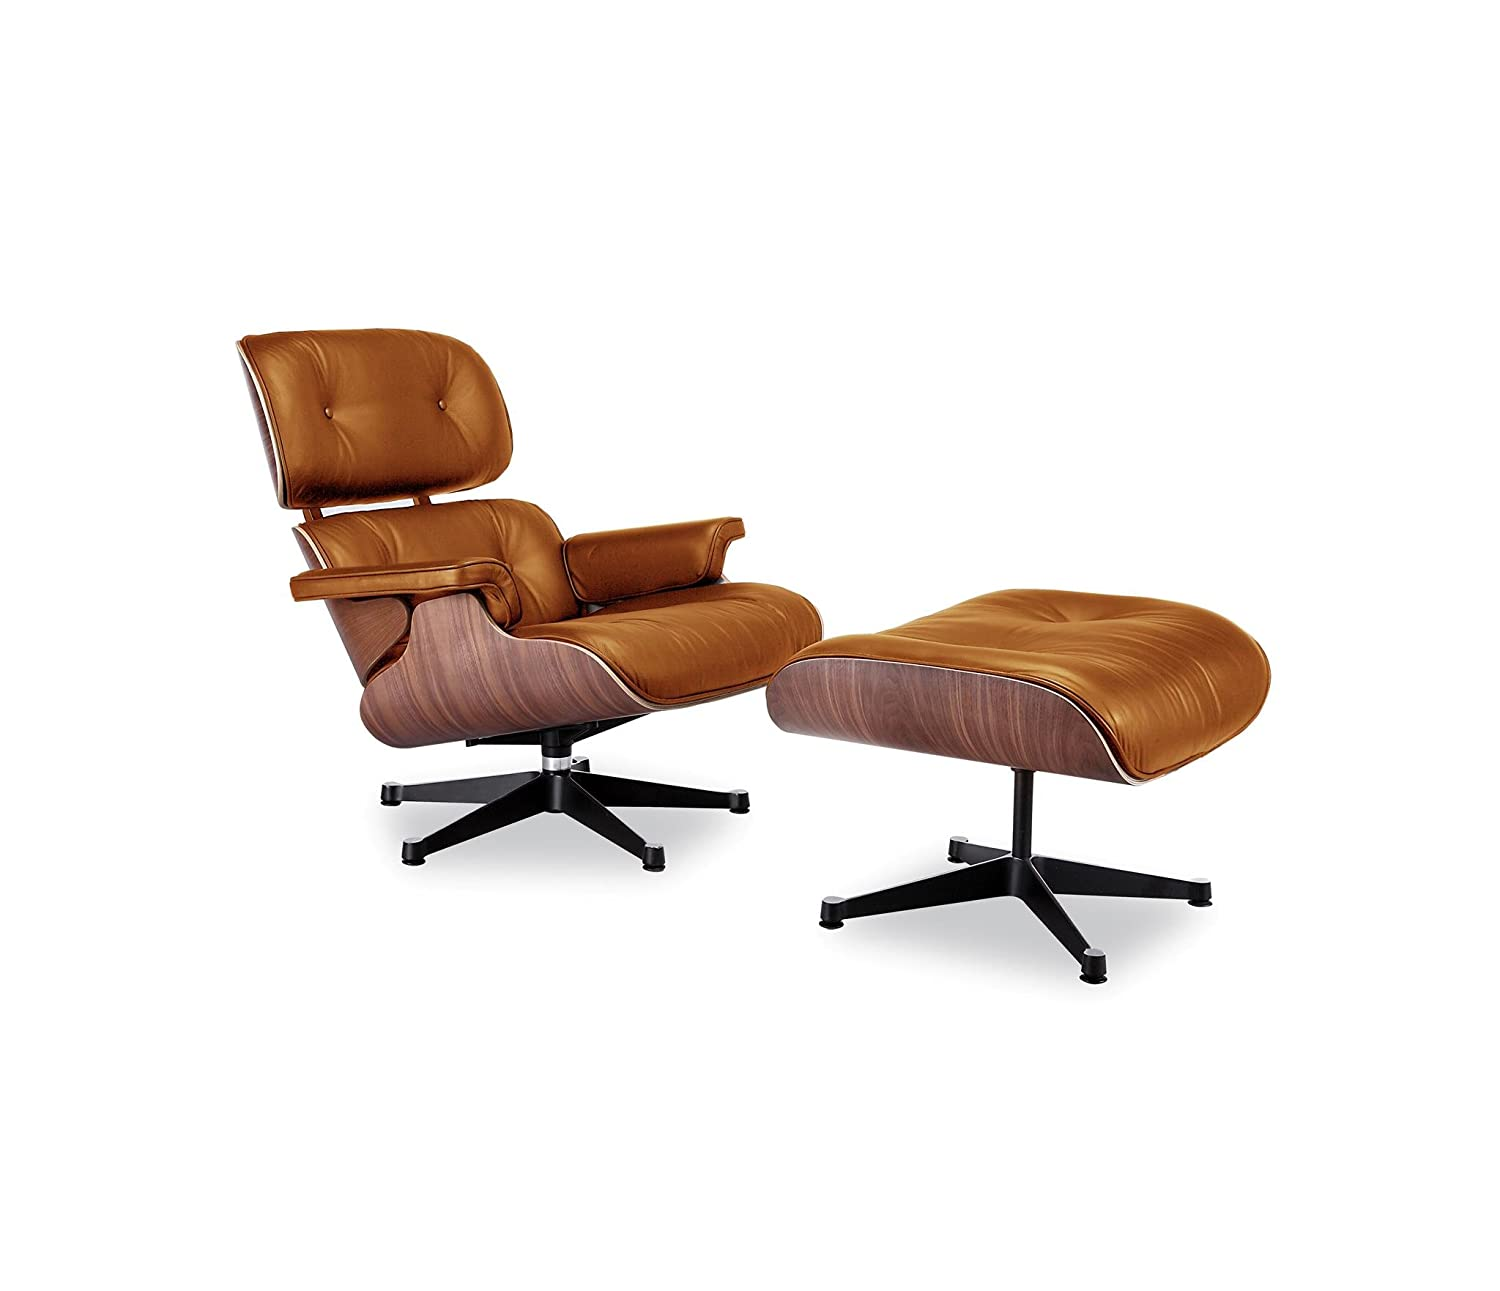 replica eames lounge chair and ottoman black. replica eames lounge chair and ottoman cigar brown black